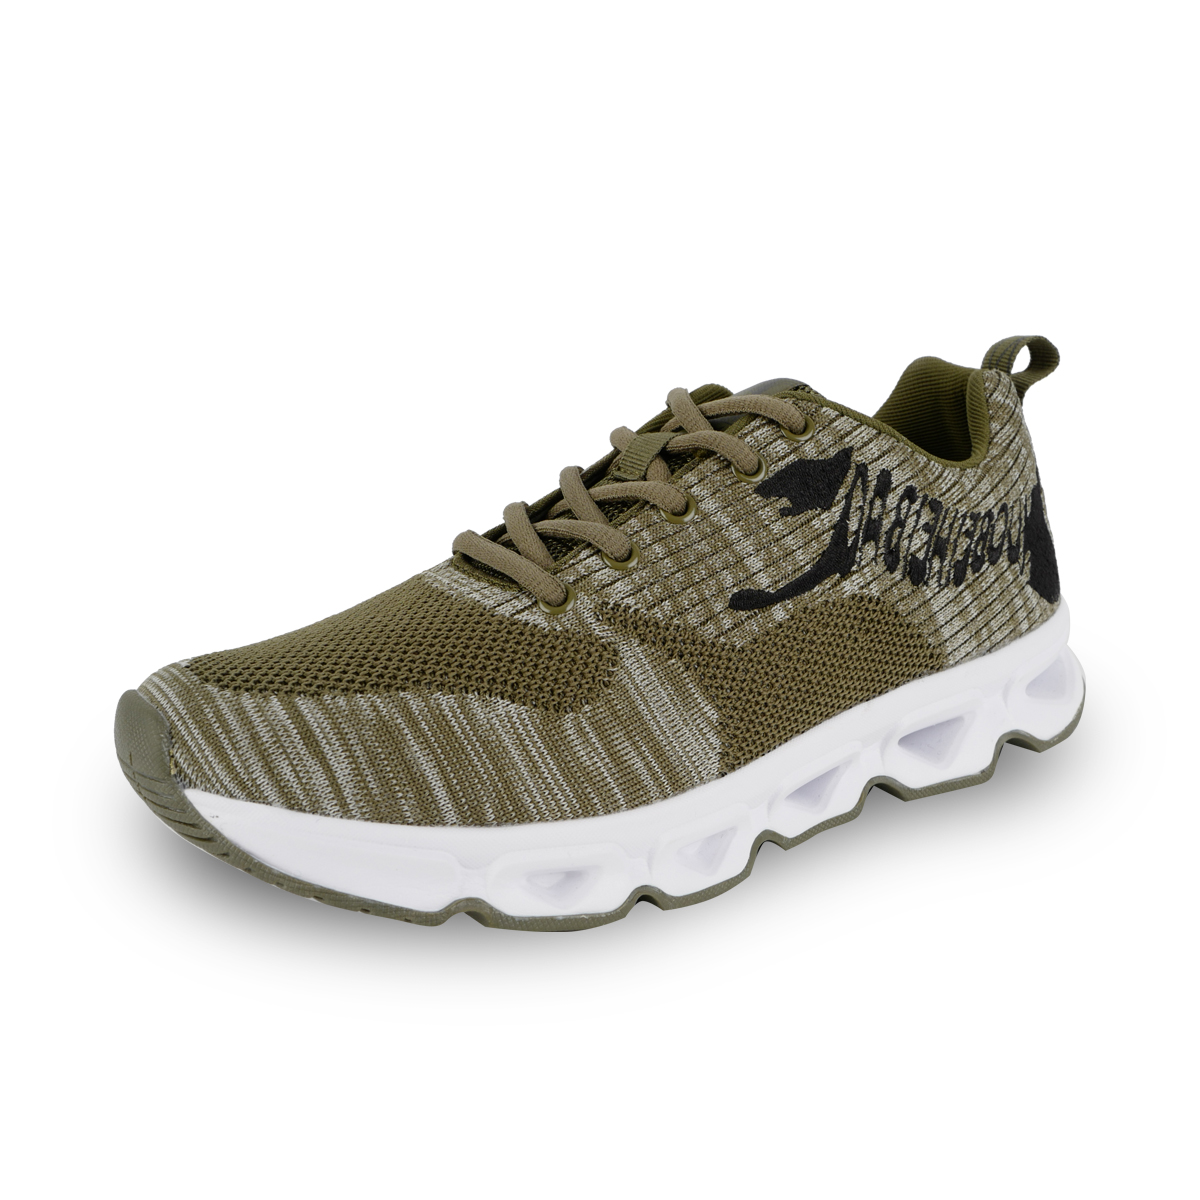 Shoes running color 2 men Camouflage Sports comfort Baolite 1qCw00